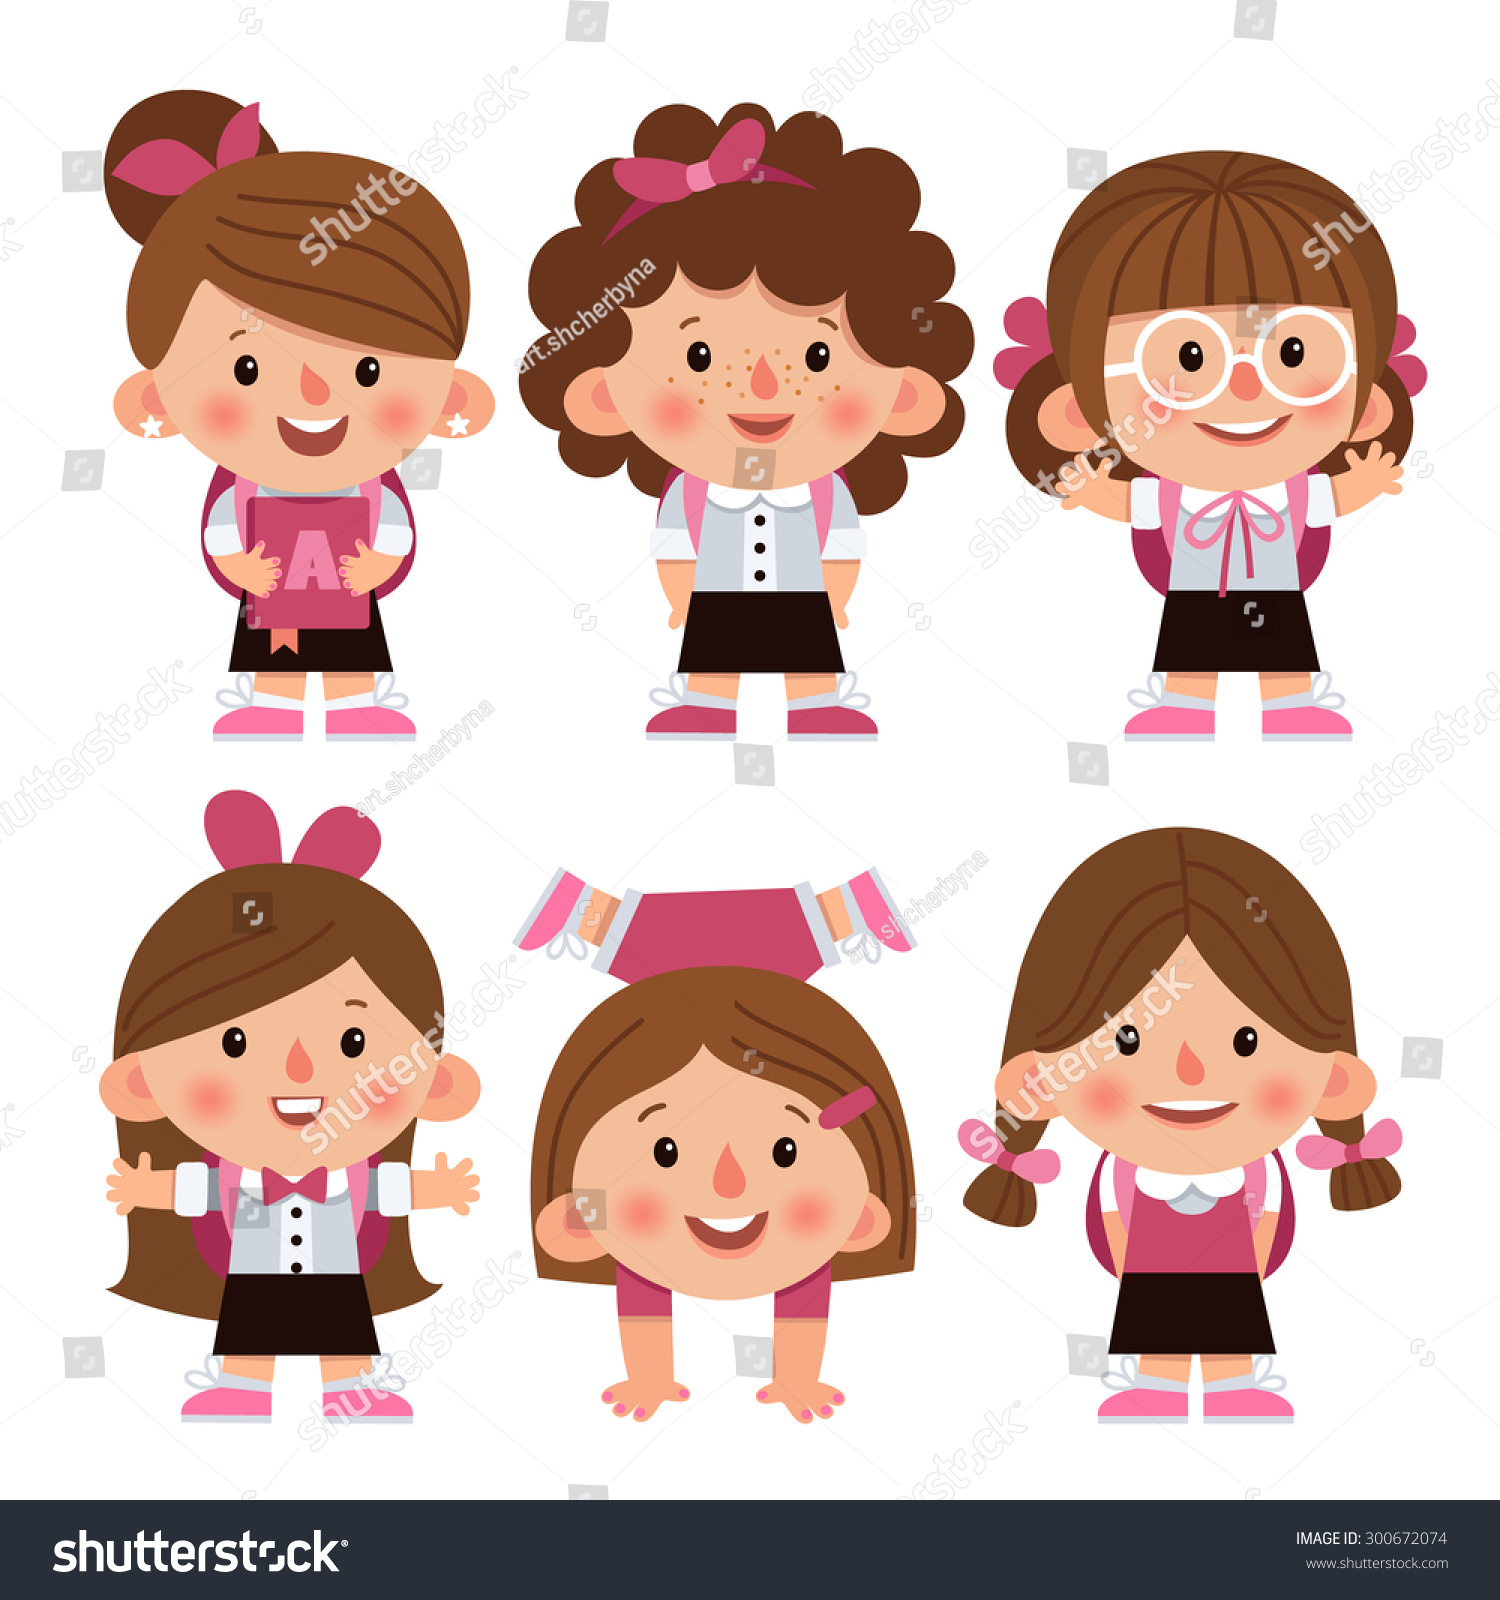 Set Cartoon Characters Girls Different Hairstyles Stock